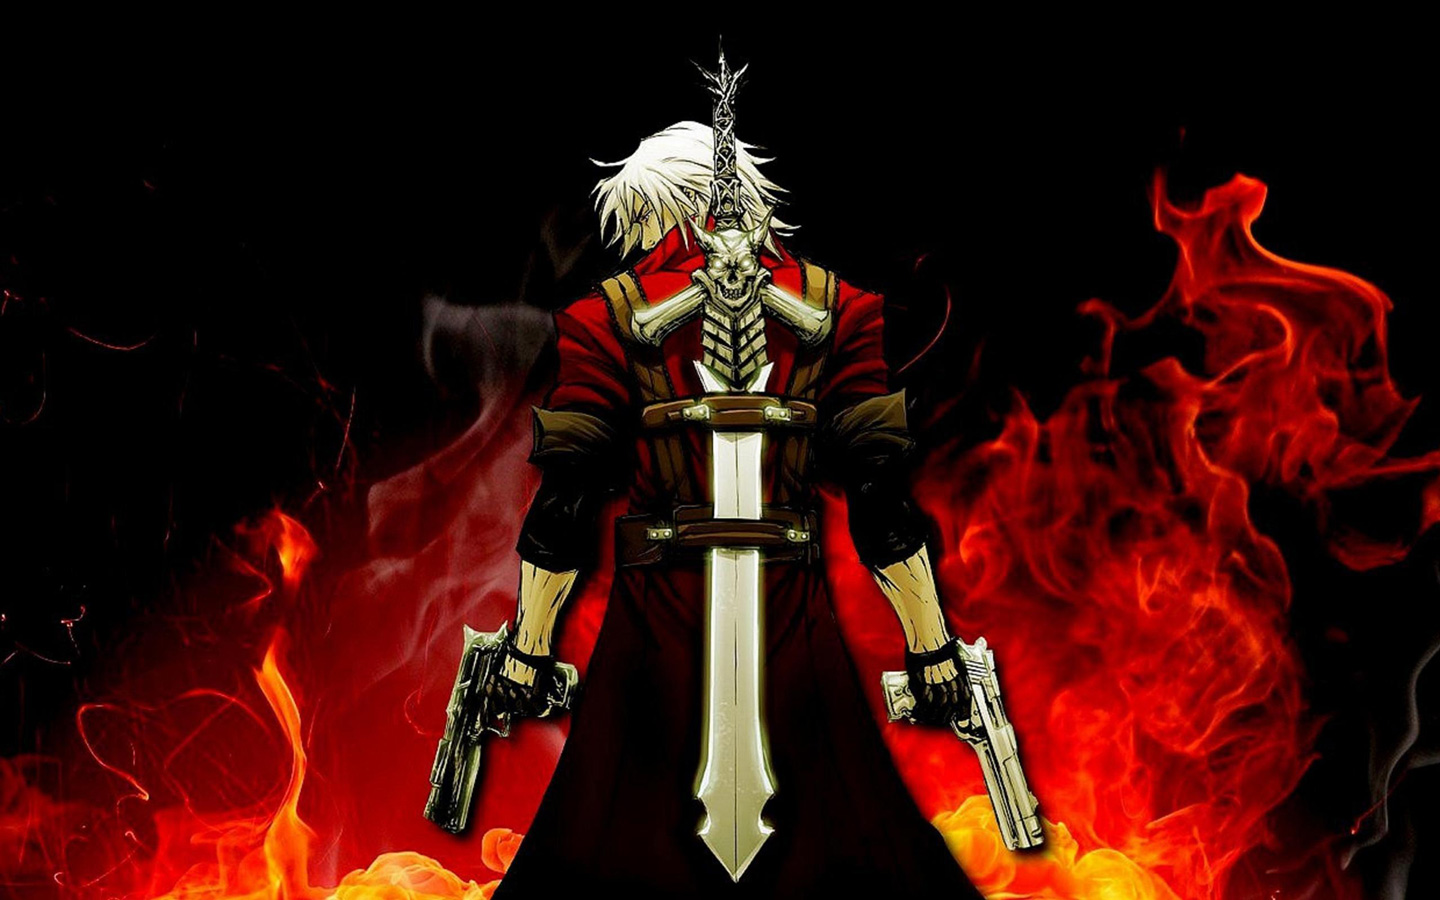 Devil May Cry 4 Wallpaper in 1440x900